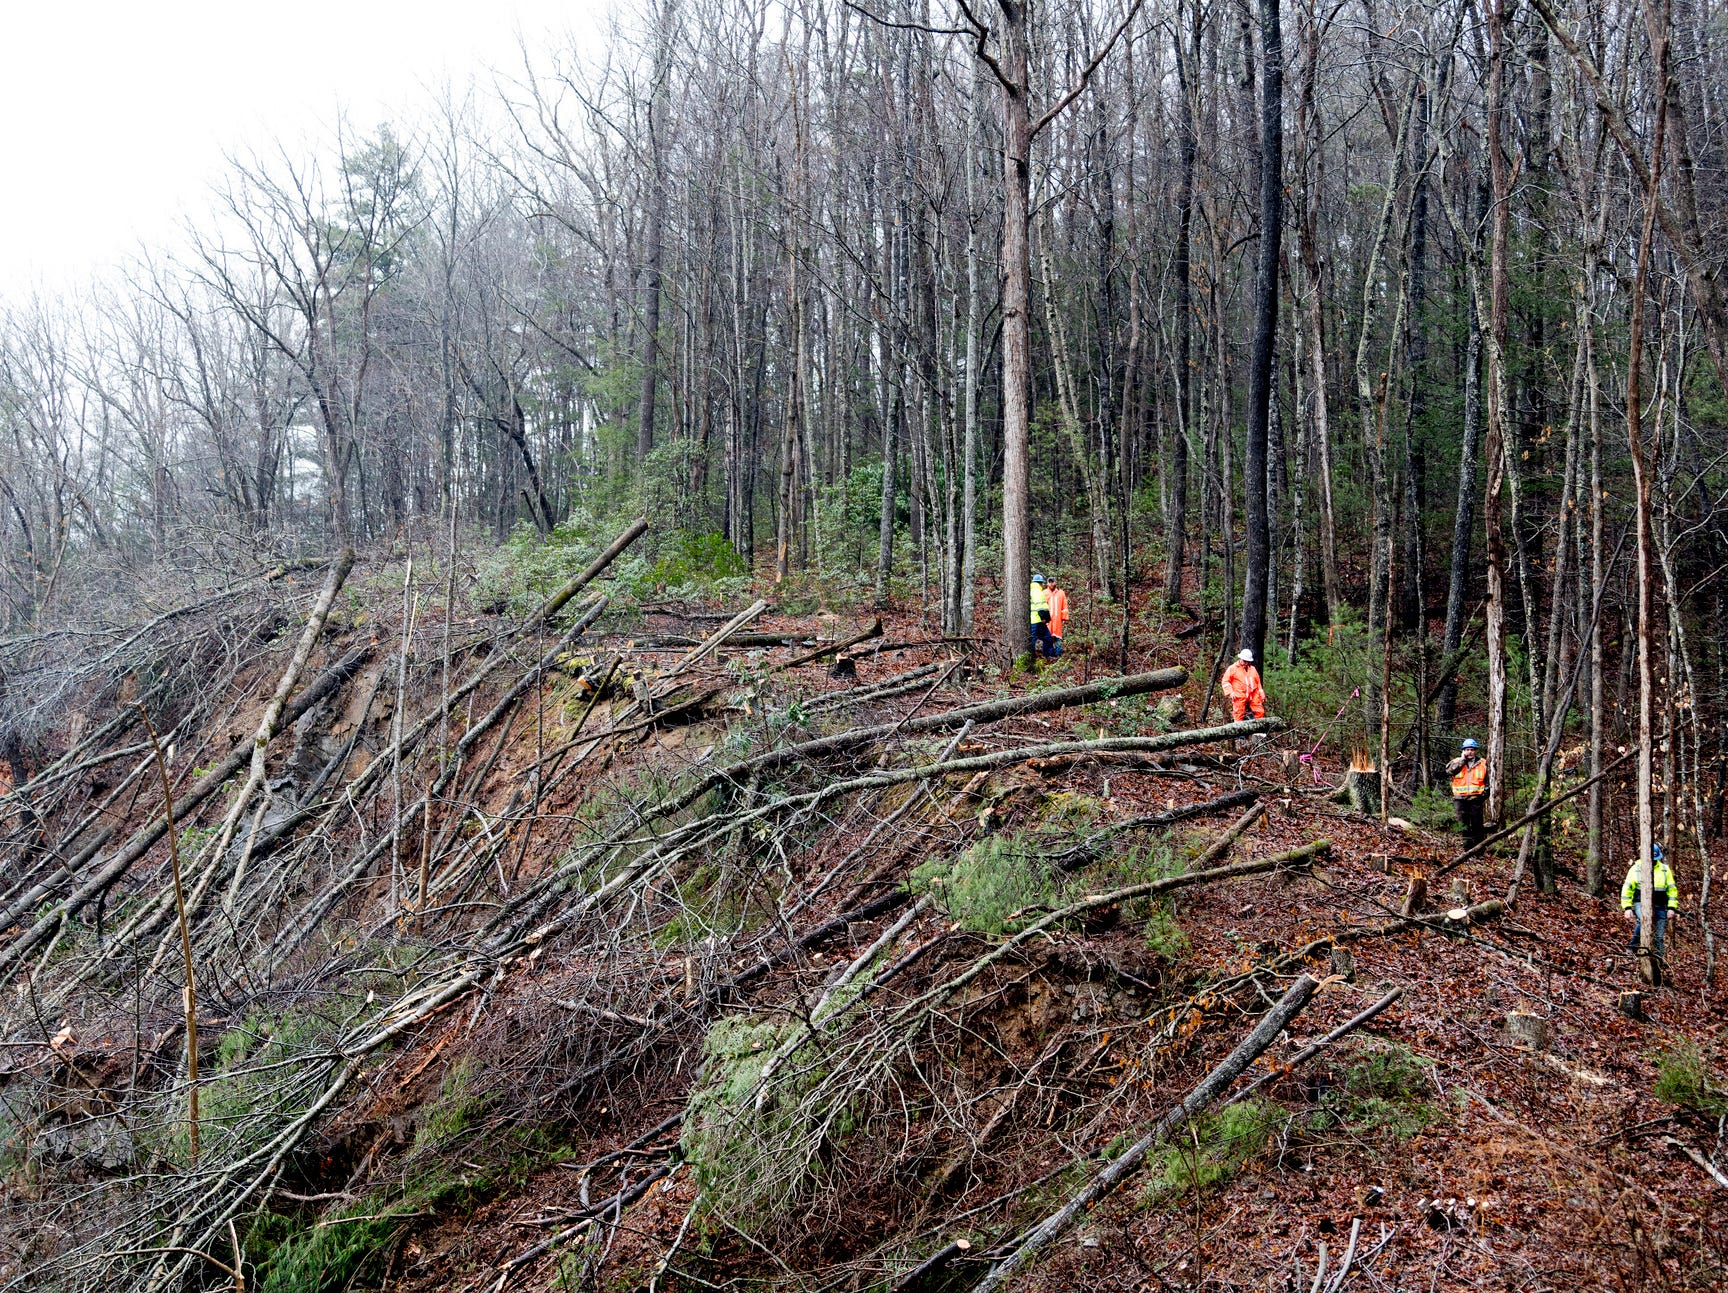 Workers climb along the edge of the mudslide on I-40 eastbound in Clyde, N.C., near the Tennessee and North Carolina border on Saturday, Feb. 23, 2019. Travel east and west on I-40 will be shut down for approximately four to seven days, with the east and west bound lanes to open with only one lane for around six weeks as crews continue repairs. (Calvin Mattheis/Knoxville News Sentinel via AP)